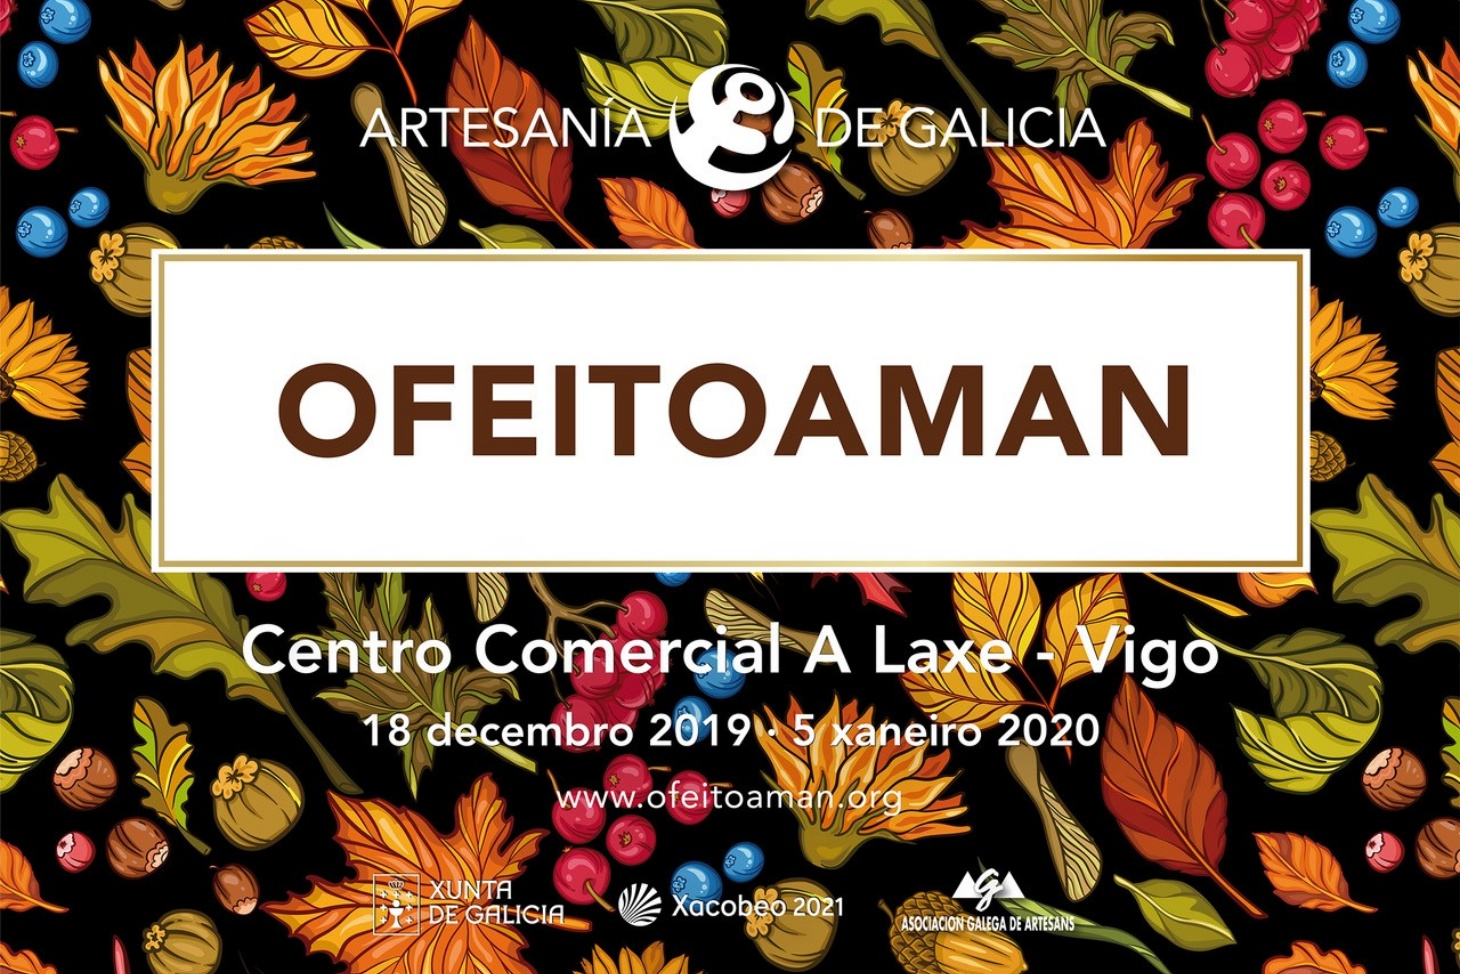 We'll be exhitiing at Ofeitoamán, in Vigo, for Christmas